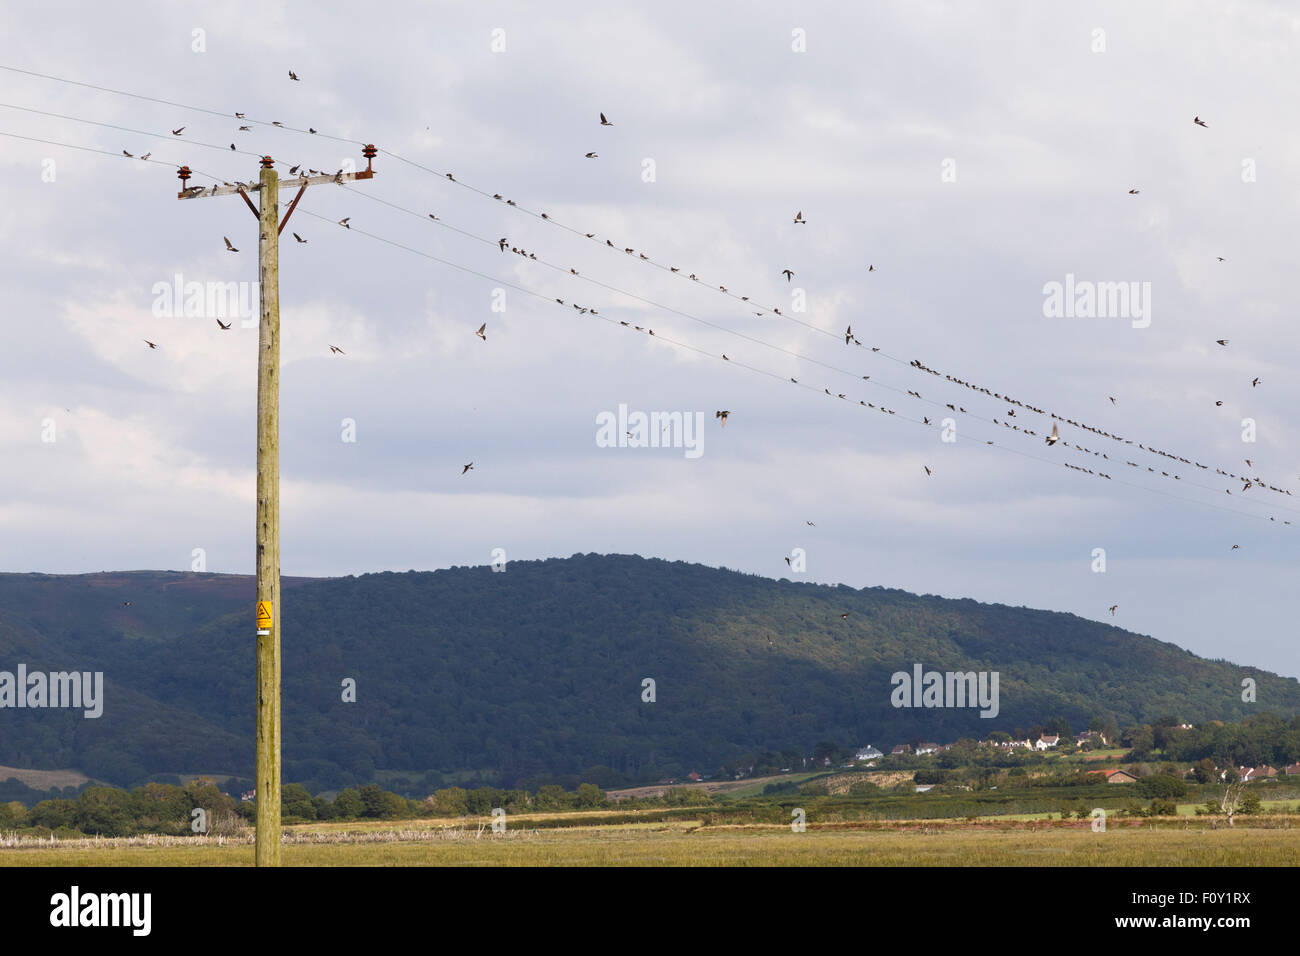 House martins gathering on electricity wires, in preparation for migration. Stock Photo